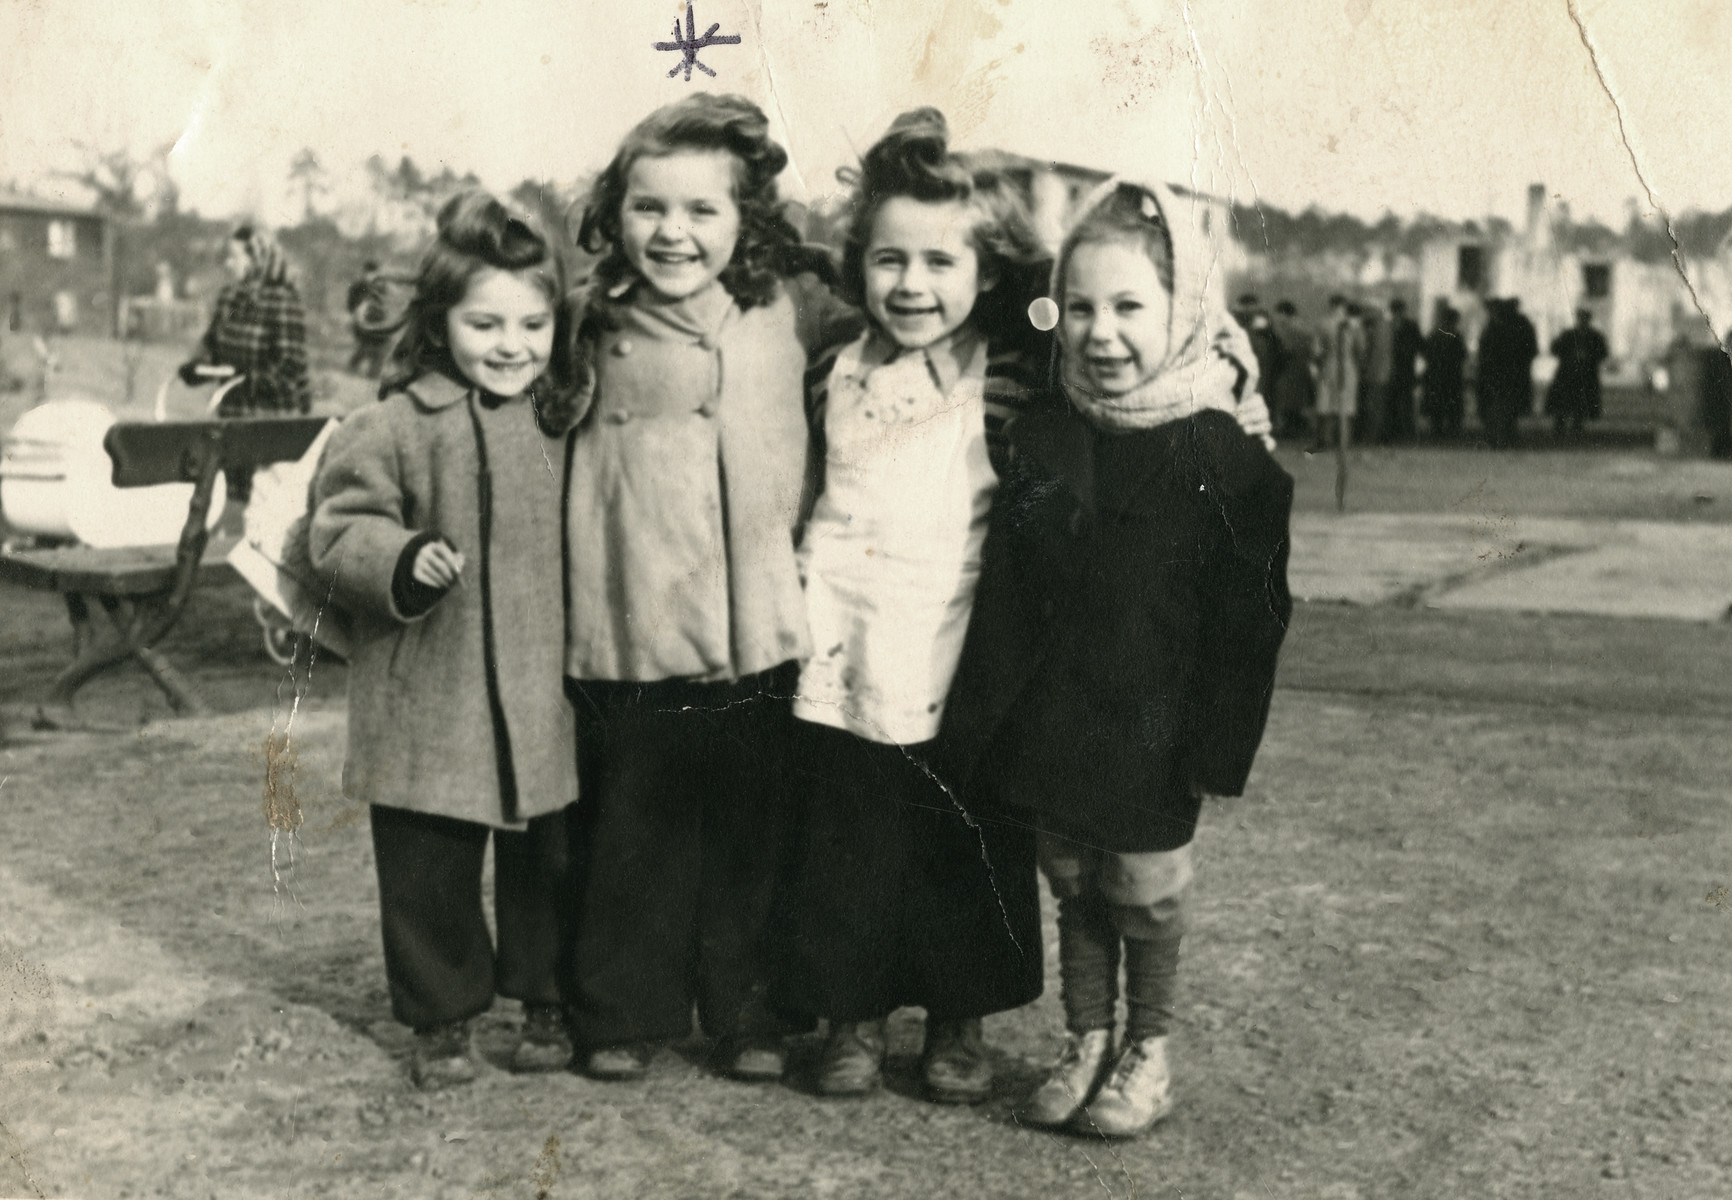 Clara poses with three other little girls at the Schlachtensee displaced persons camp.   Clara is the second girl on the left.